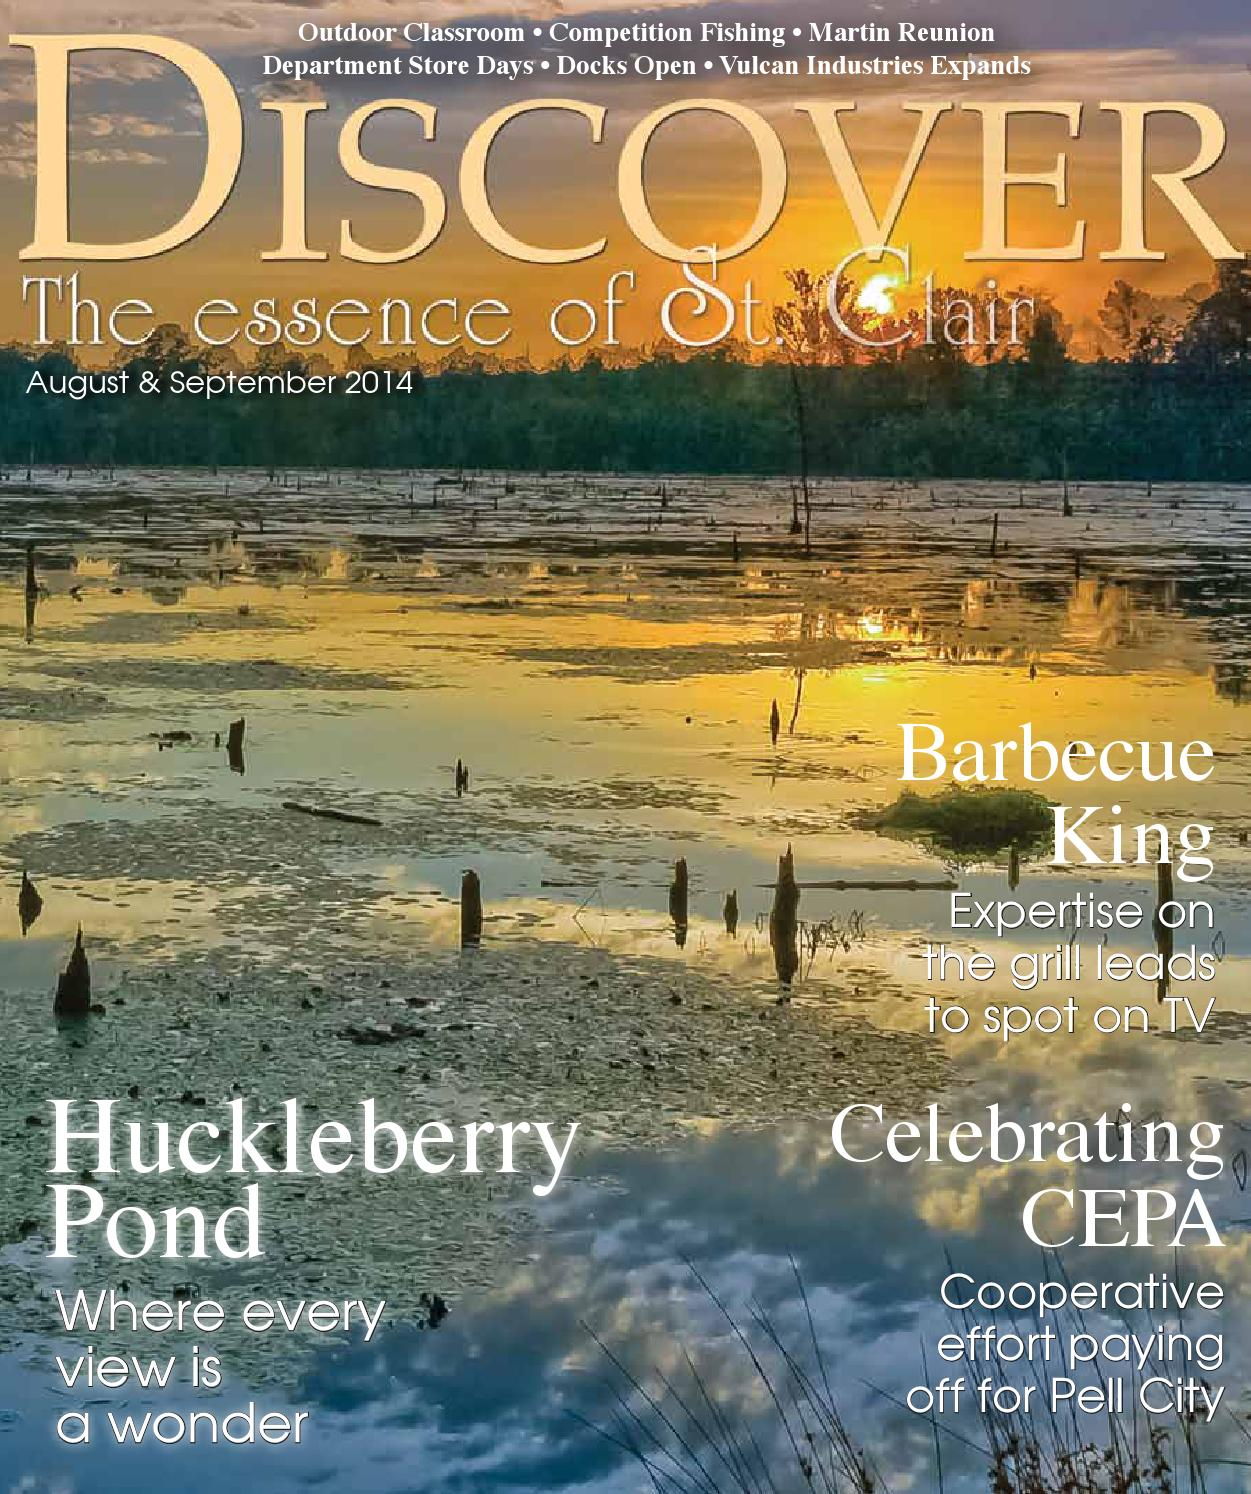 Alabama saint clair county odenville - Discover St Clair August September 2014 By Discover The Essence Of St Clair Issuu